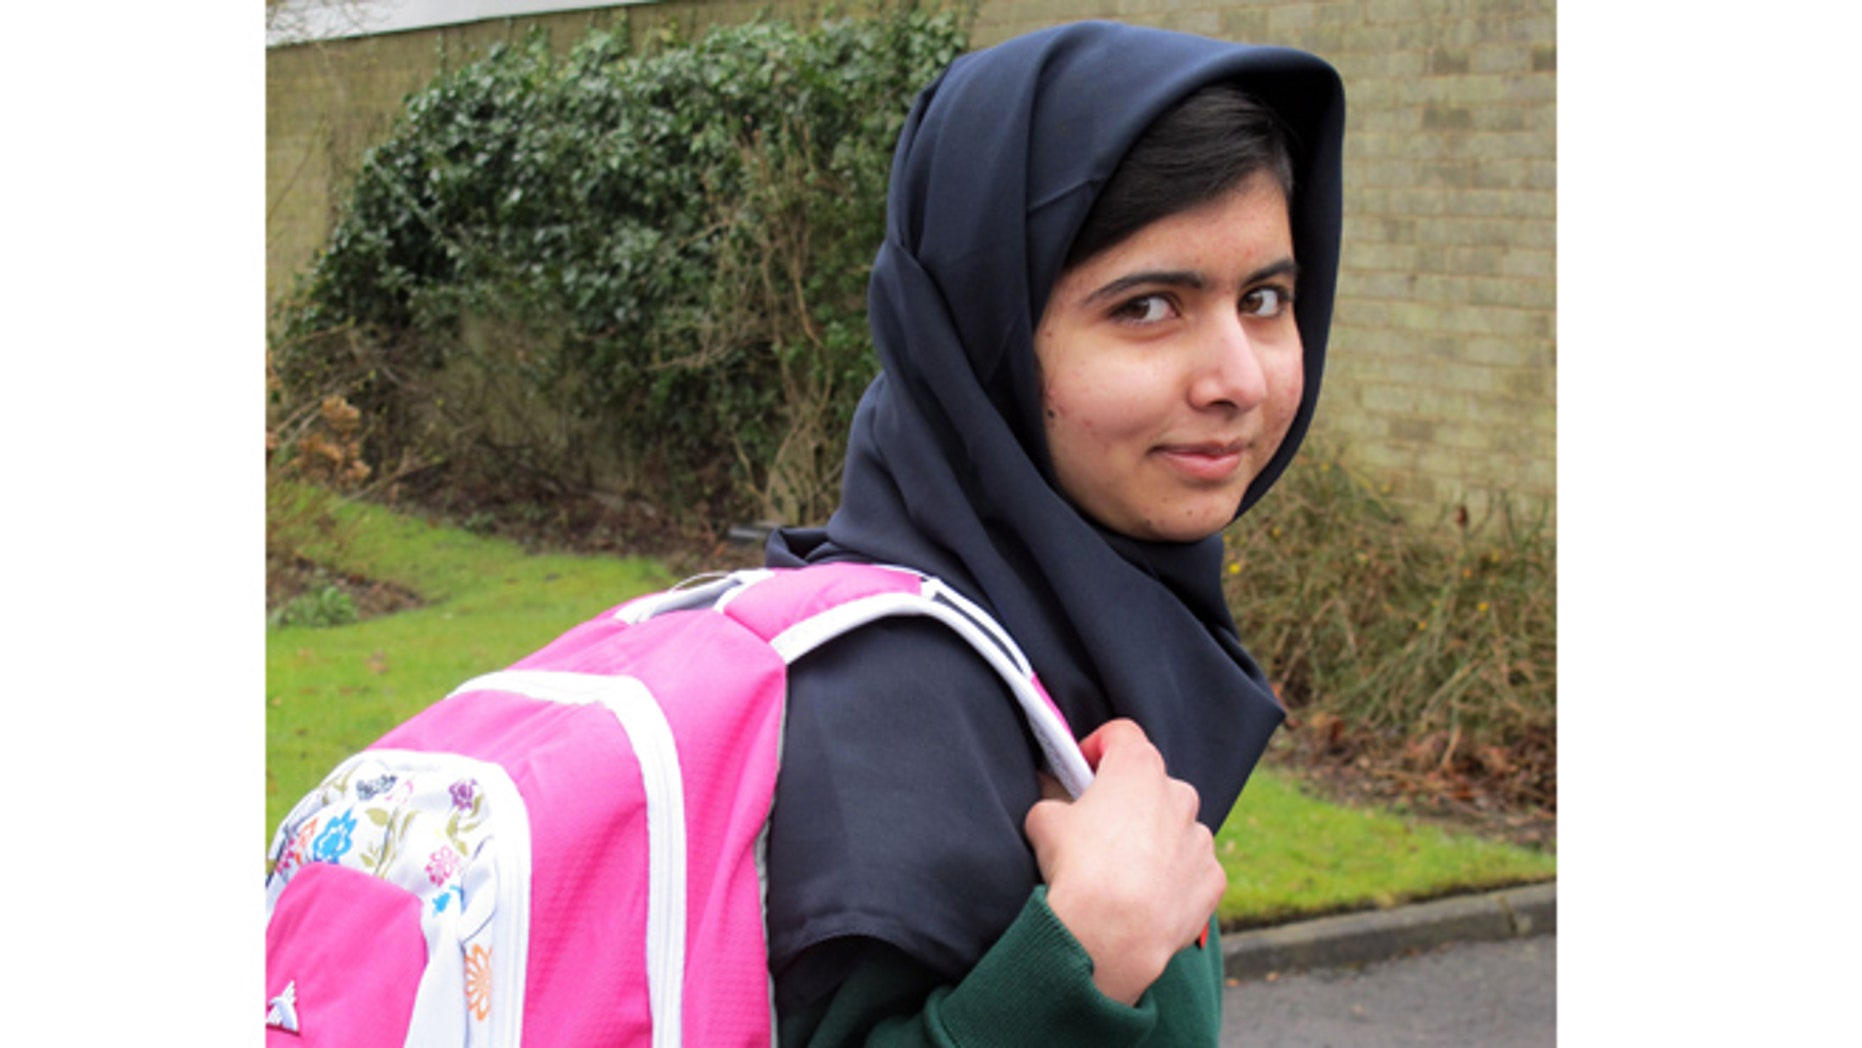 March 19, 2013 - FILE photo of Malala Yousafzai, the Pakistani schoolgirl shot in the head by the Taliban, as she attends her first day of school, weeks after being released from a hospital. The 15-year-old participated in lessons at the Edgbaston High School for Girls in Birmingham, central England. She survived an assassination attempt by the fundamentalist political group in October last year and underwent hours of surgery in the UK to try and repair the damage caused by a bullet which grazed her brain.